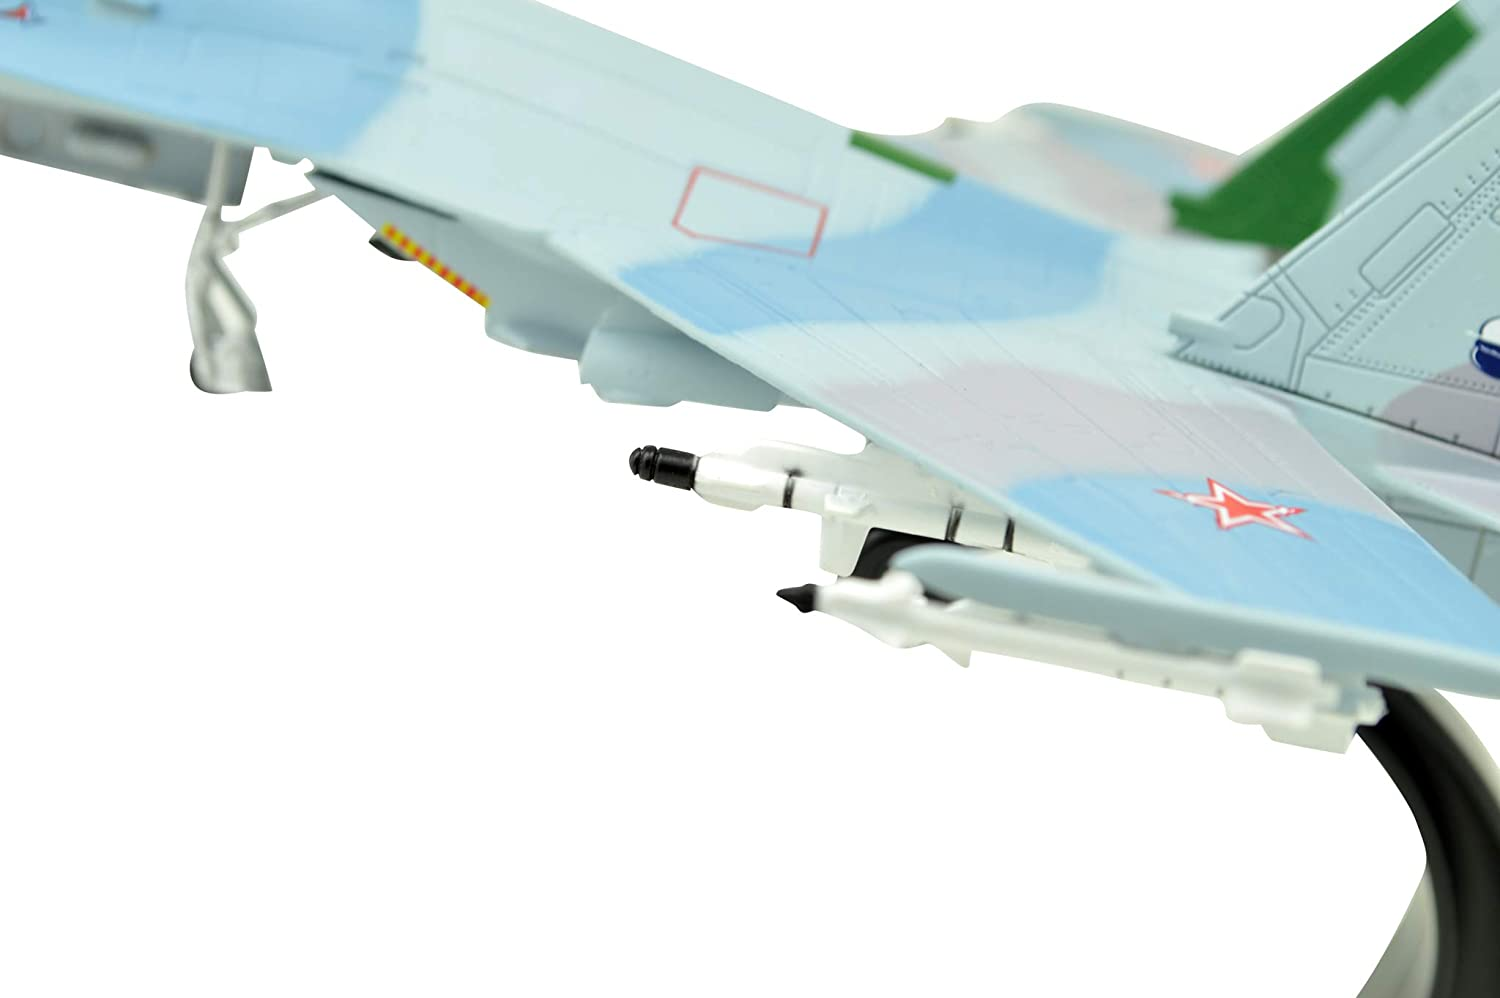 TM 1:100 Sukhoi Su-27 Fighter Attack Metal Plane Model,Soviet Union 1987,Military Airplane Model,Diecast/Plane,for Collecting and Gift TANG DYNASTY